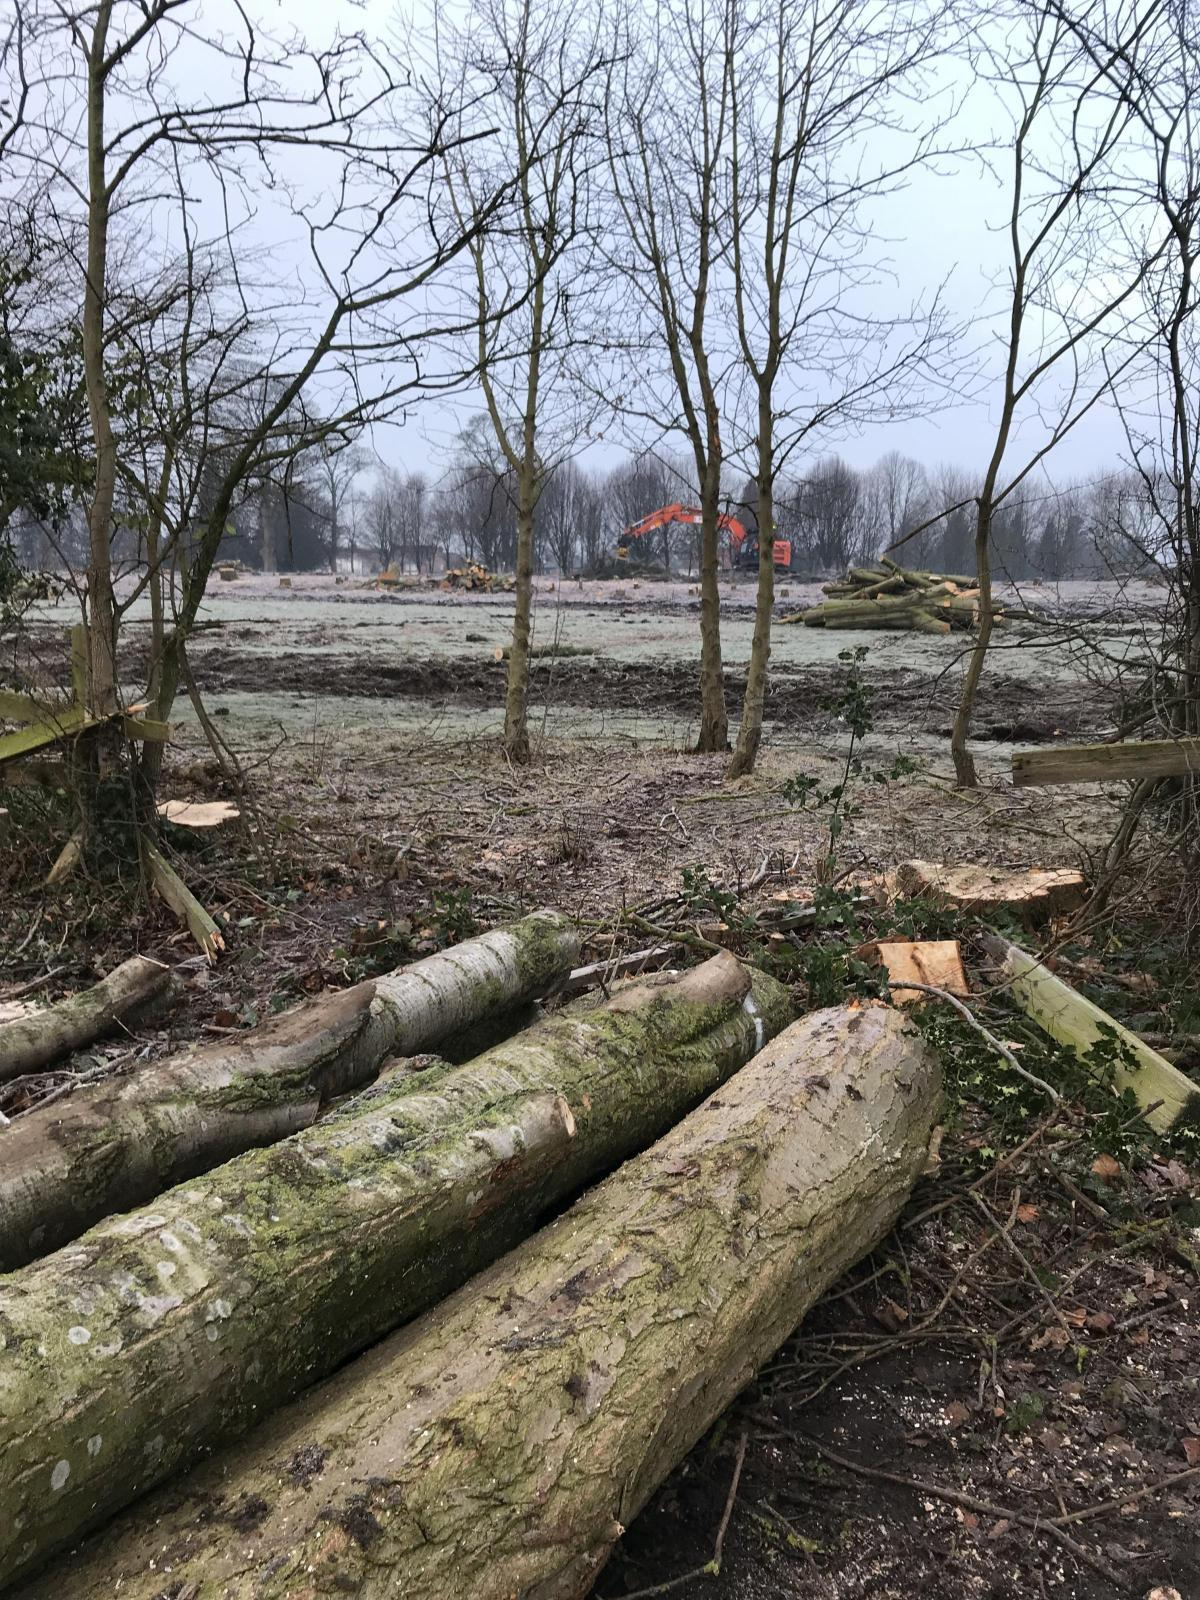 TREES: Dozens, possibly hundreds, of trees have been felled in the Blackwell area, much to the horror of residents